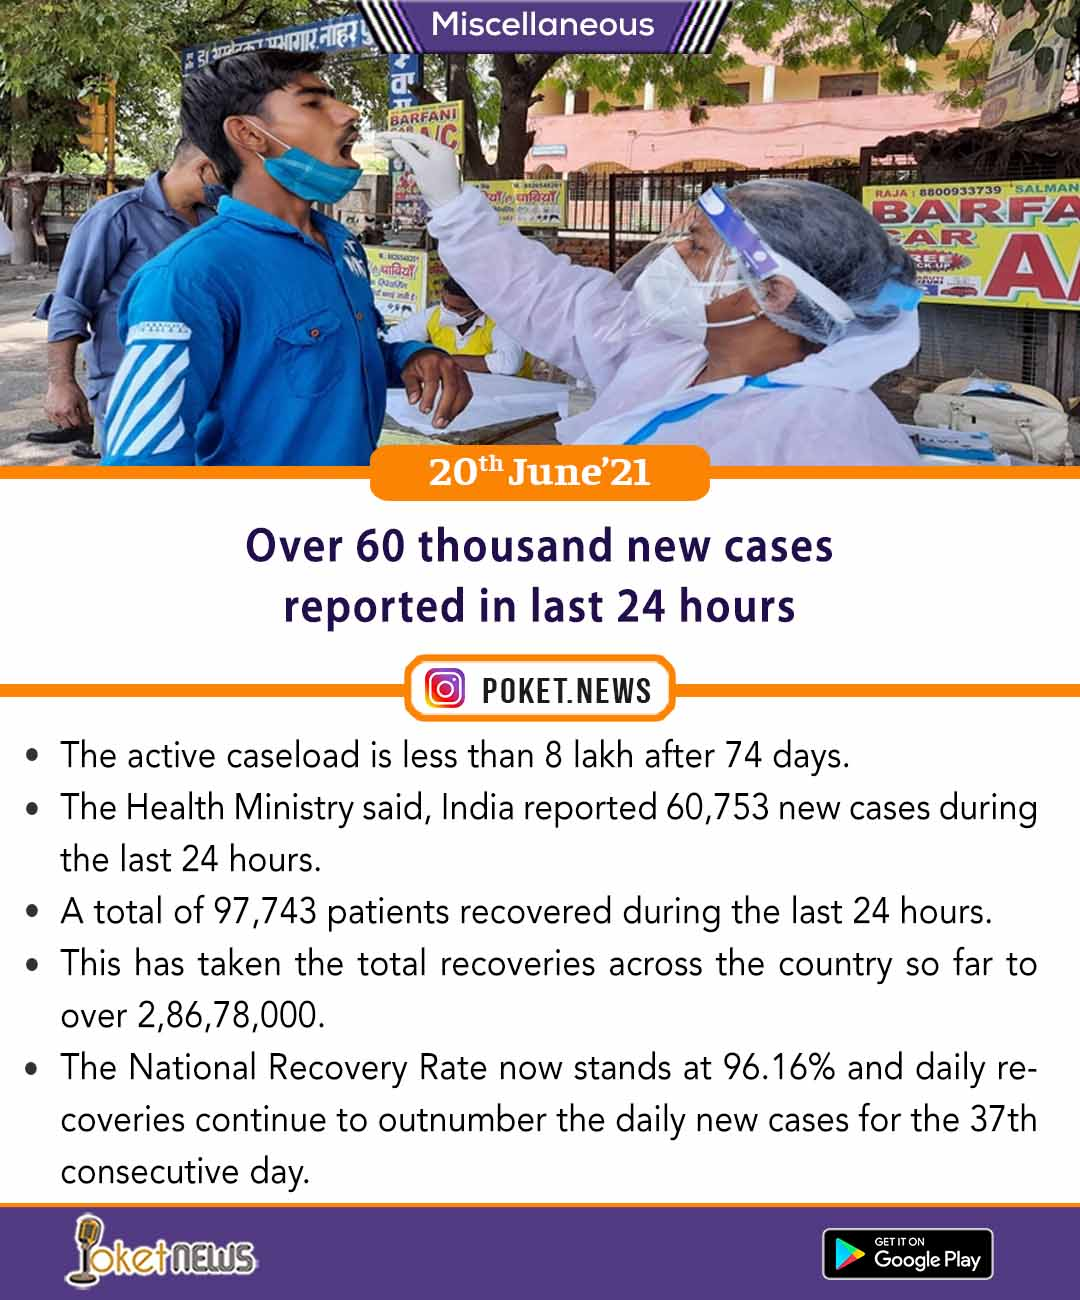 Over 60 thousand new cases reported in last 24 hours